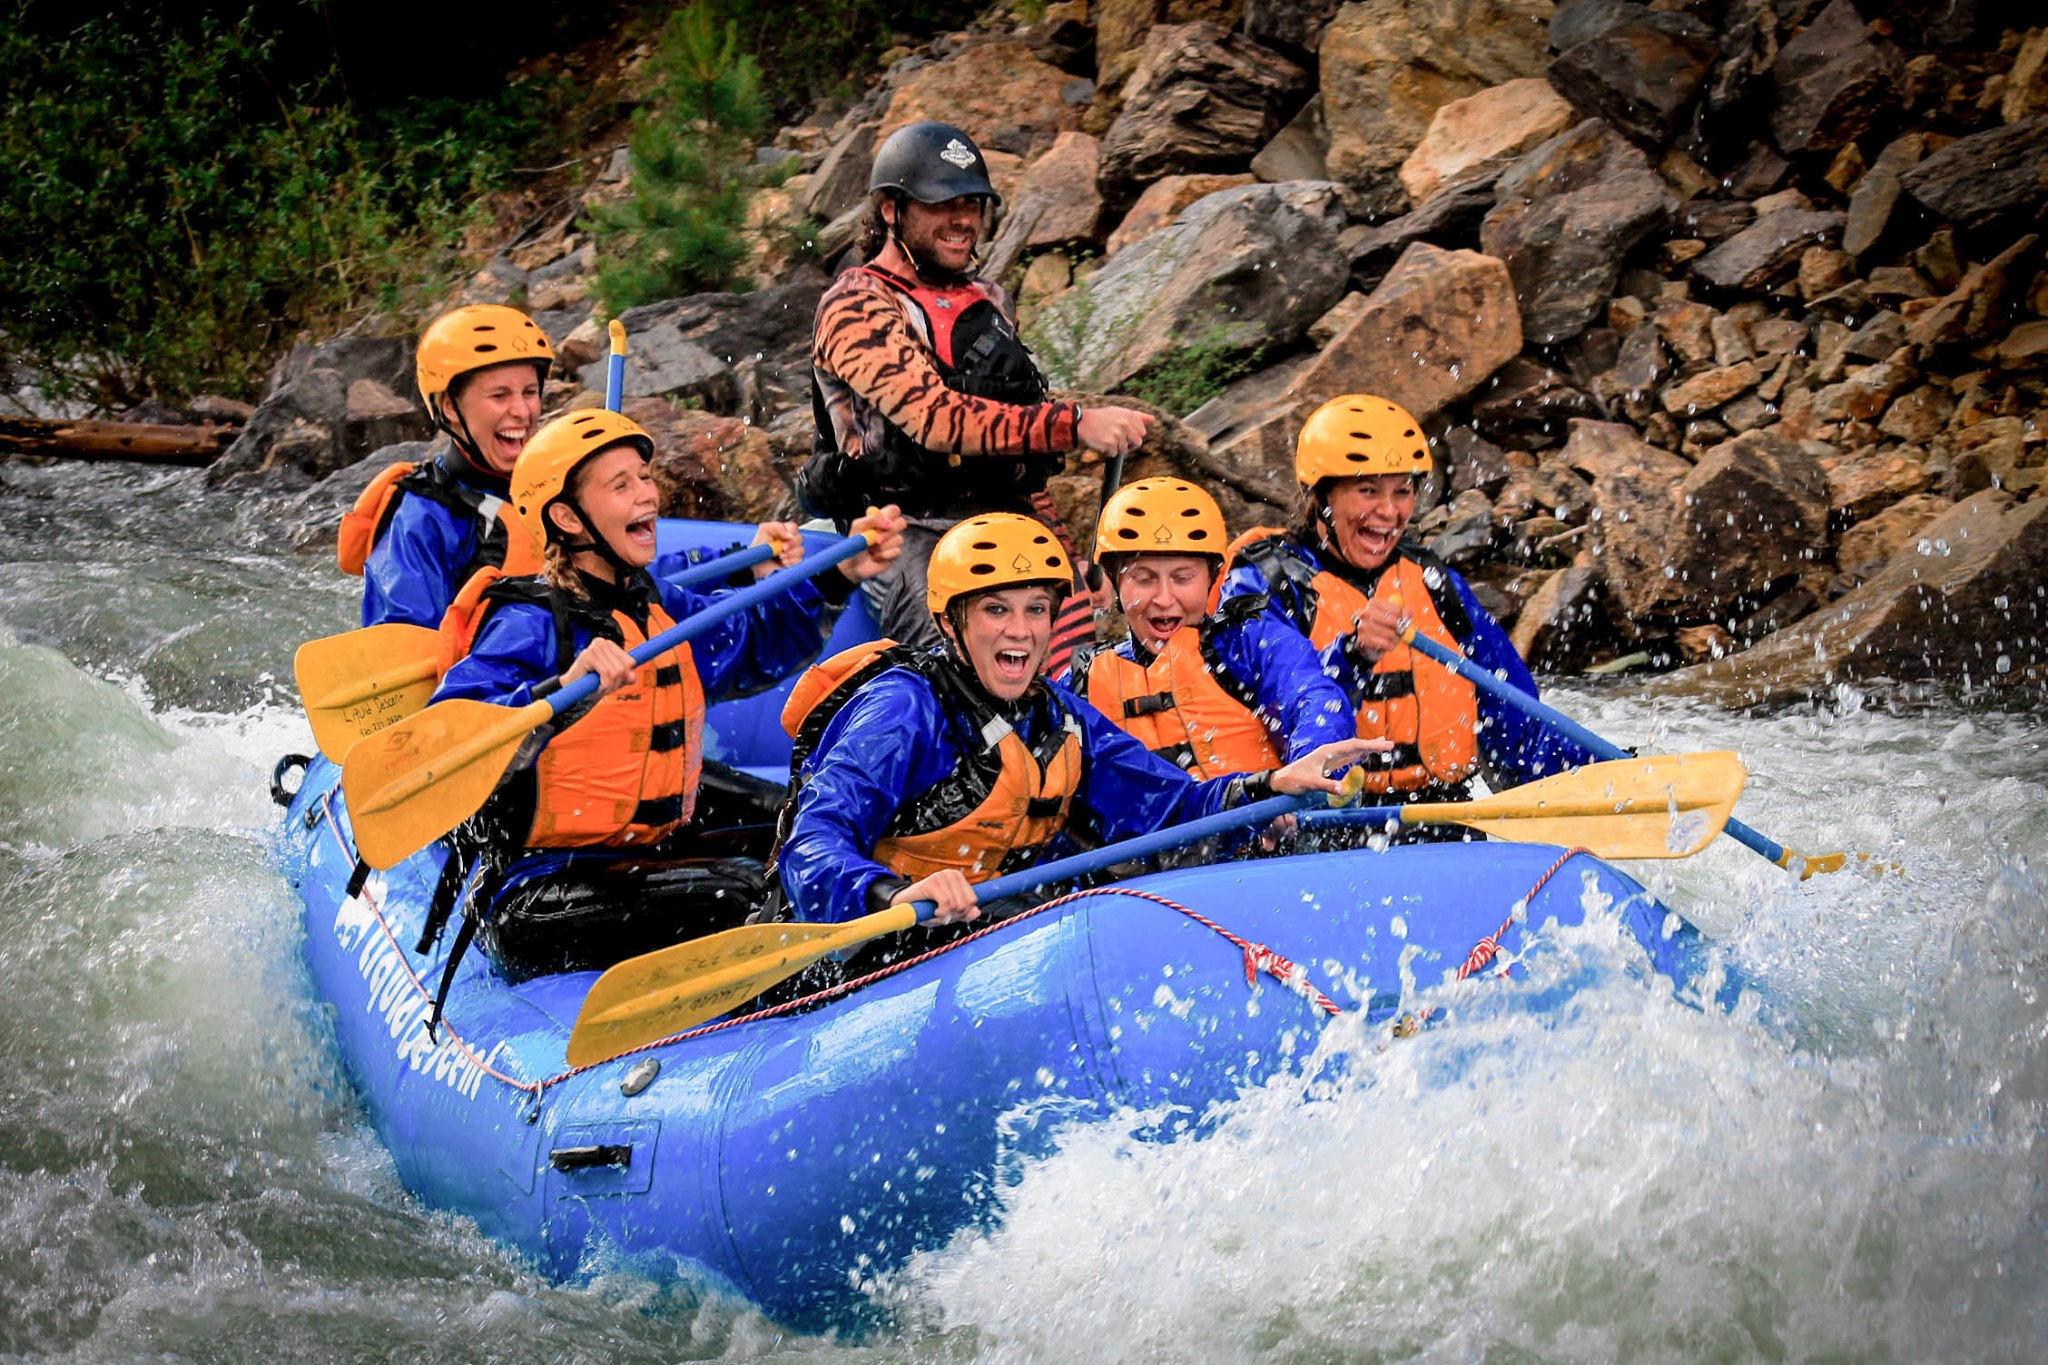 Whitewater rafting on Clear Creek